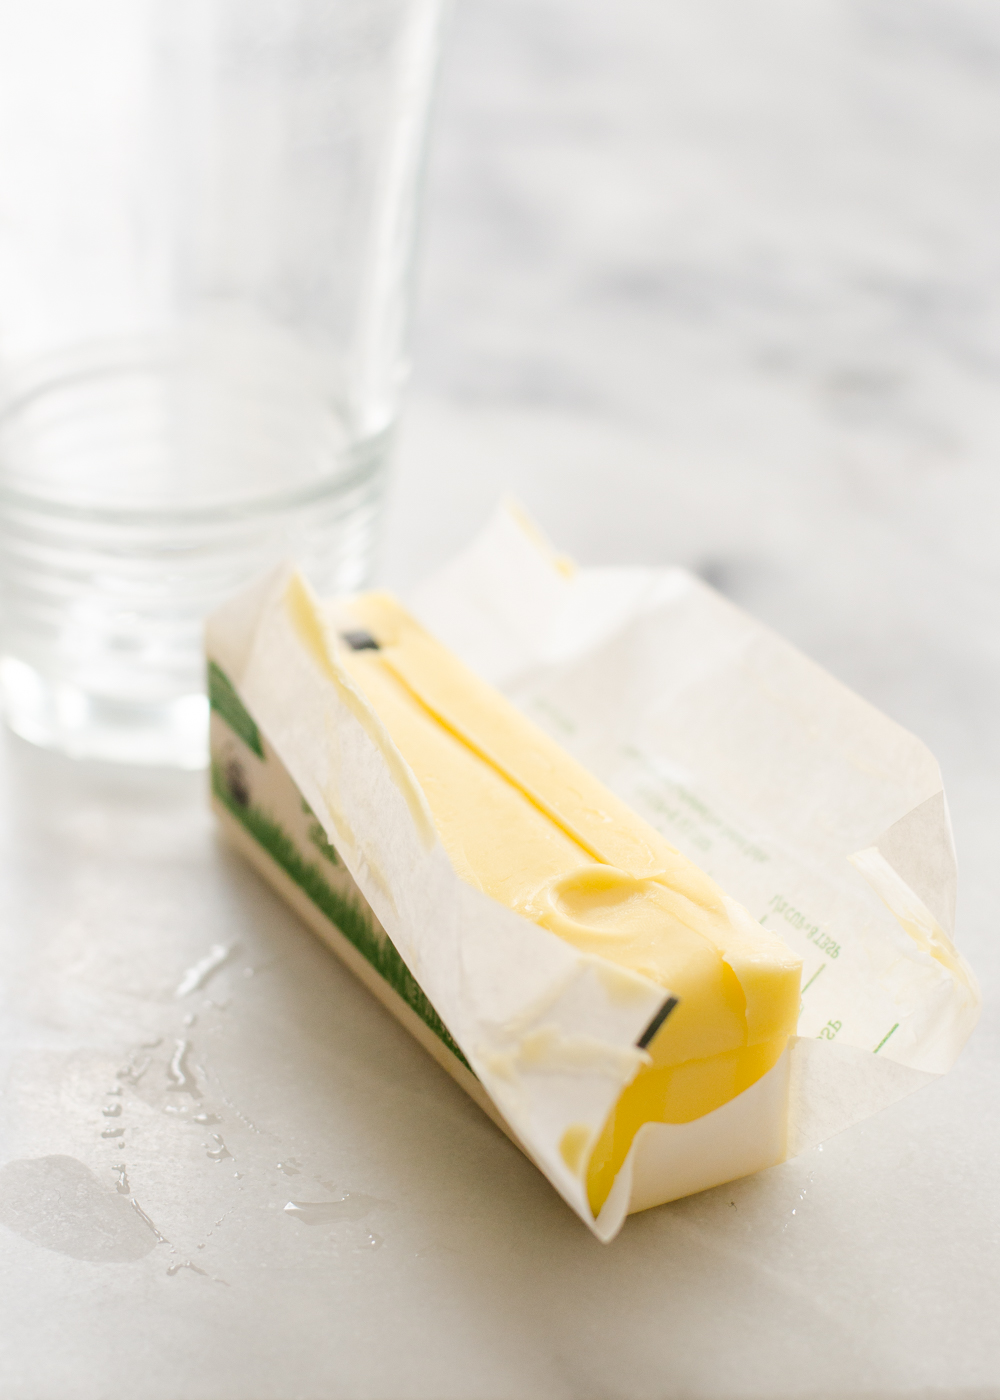 Pinterest Tested: Softening Butter Quickly